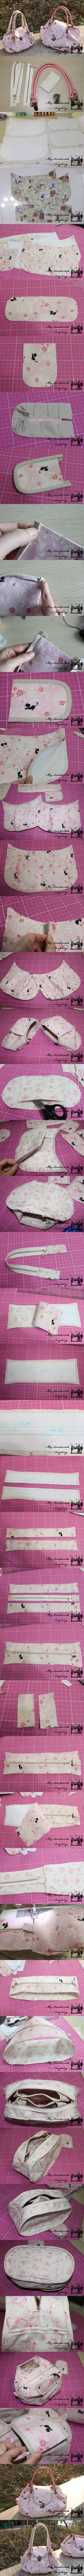 DIY Sew Cute Handbag DIY Sew Cute Handbag by diyforever